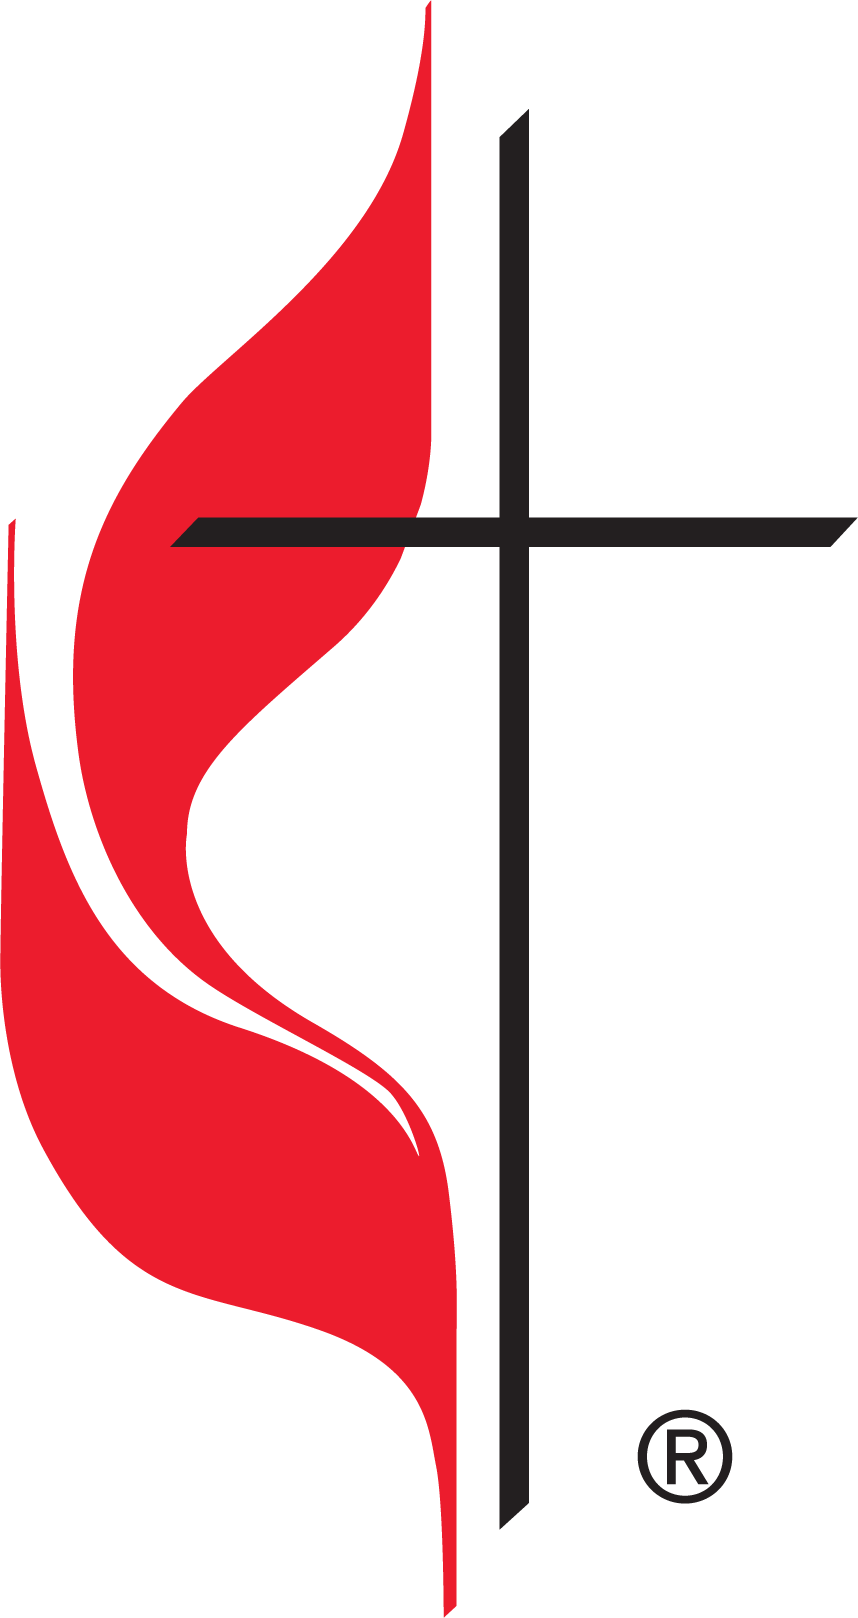 The United Methodist cross and flame.